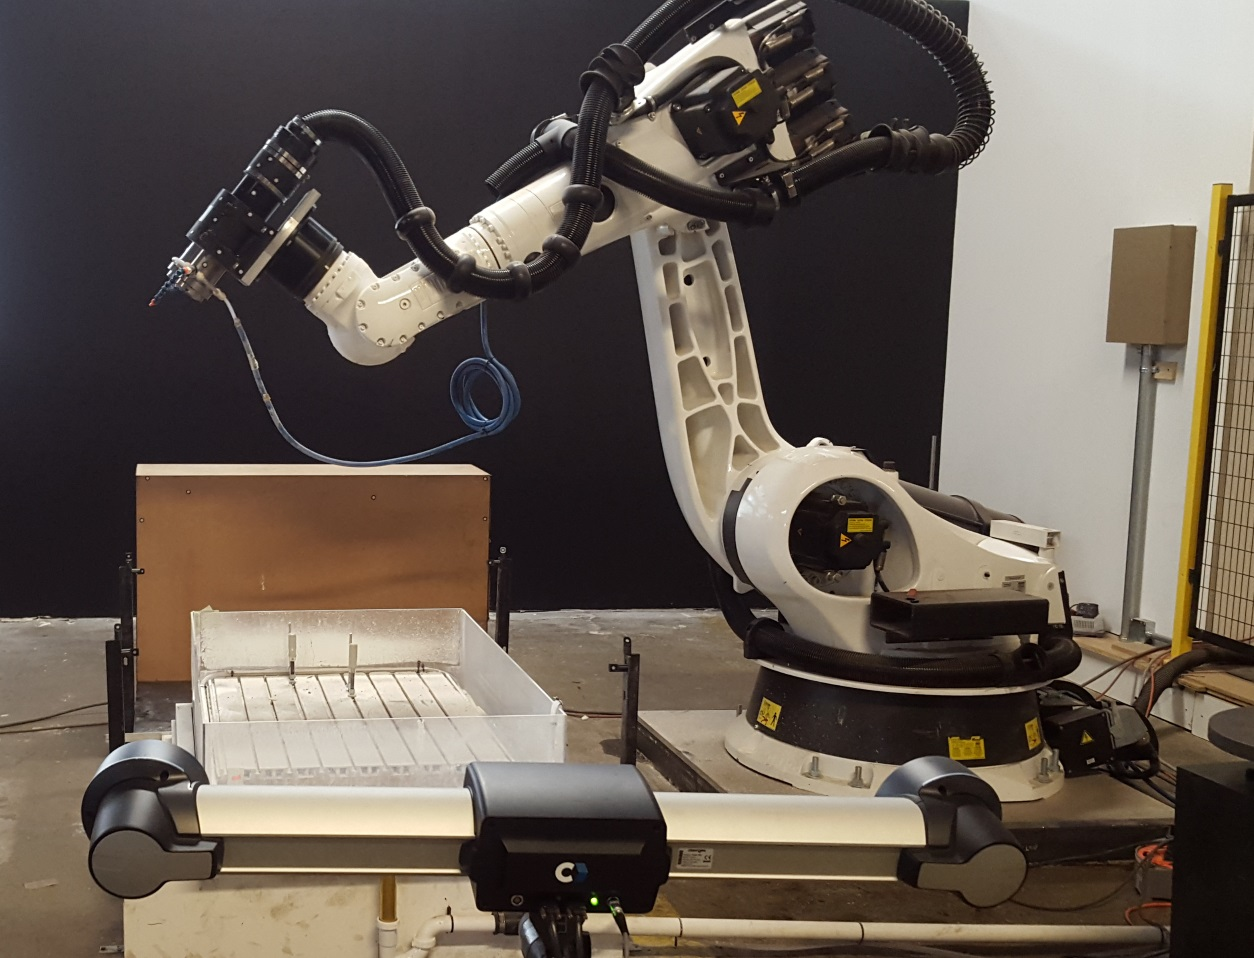 KUKA robot calibration with RoboDK